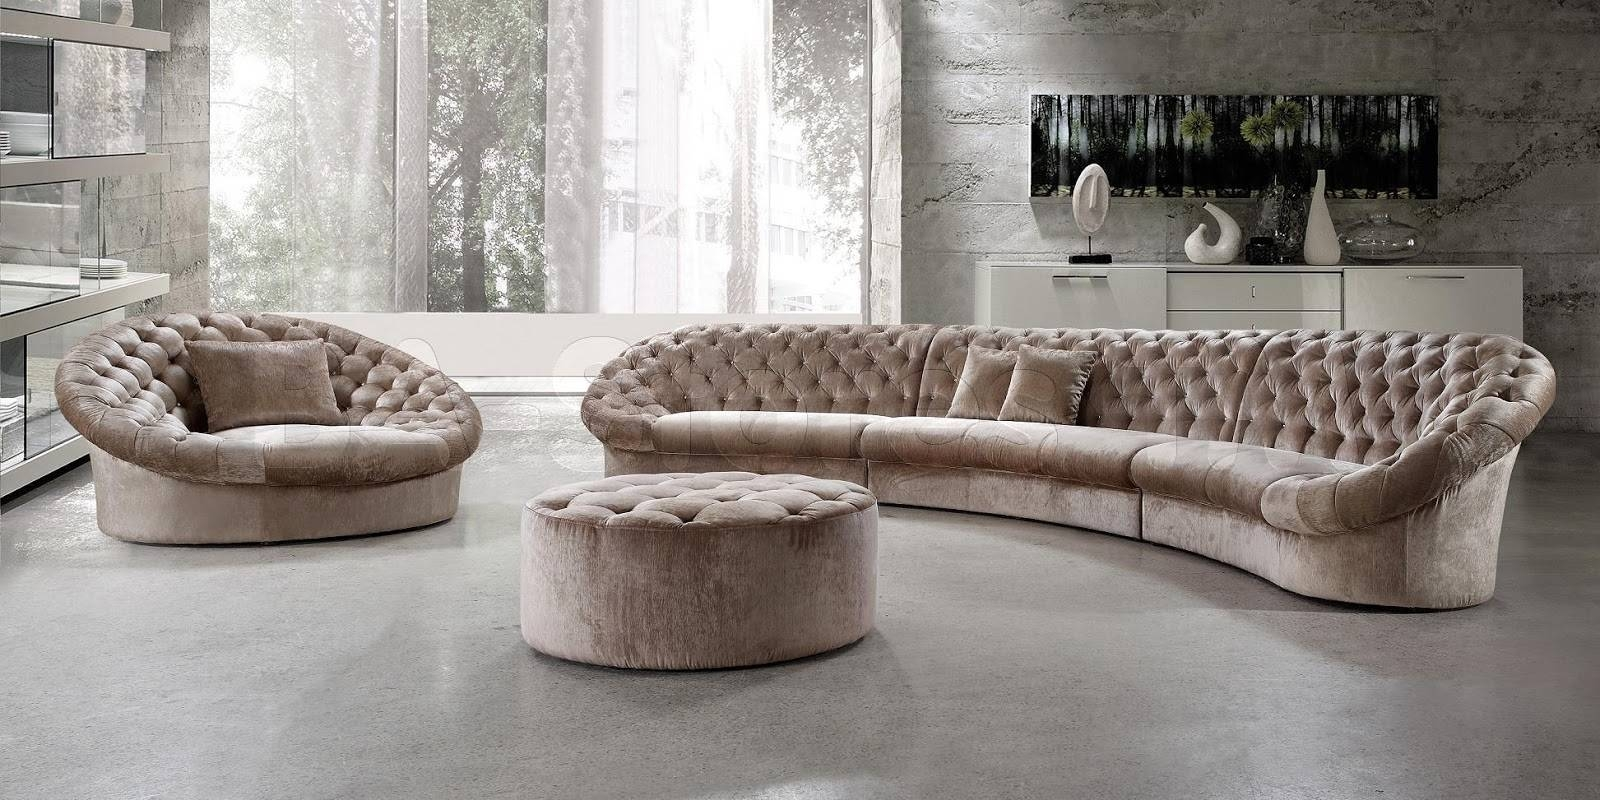 Amusing Semi Circular Sectional Sofa 59 About Remodel Small intended for Semi Circular Sectional Sofas (Image 1 of 15)